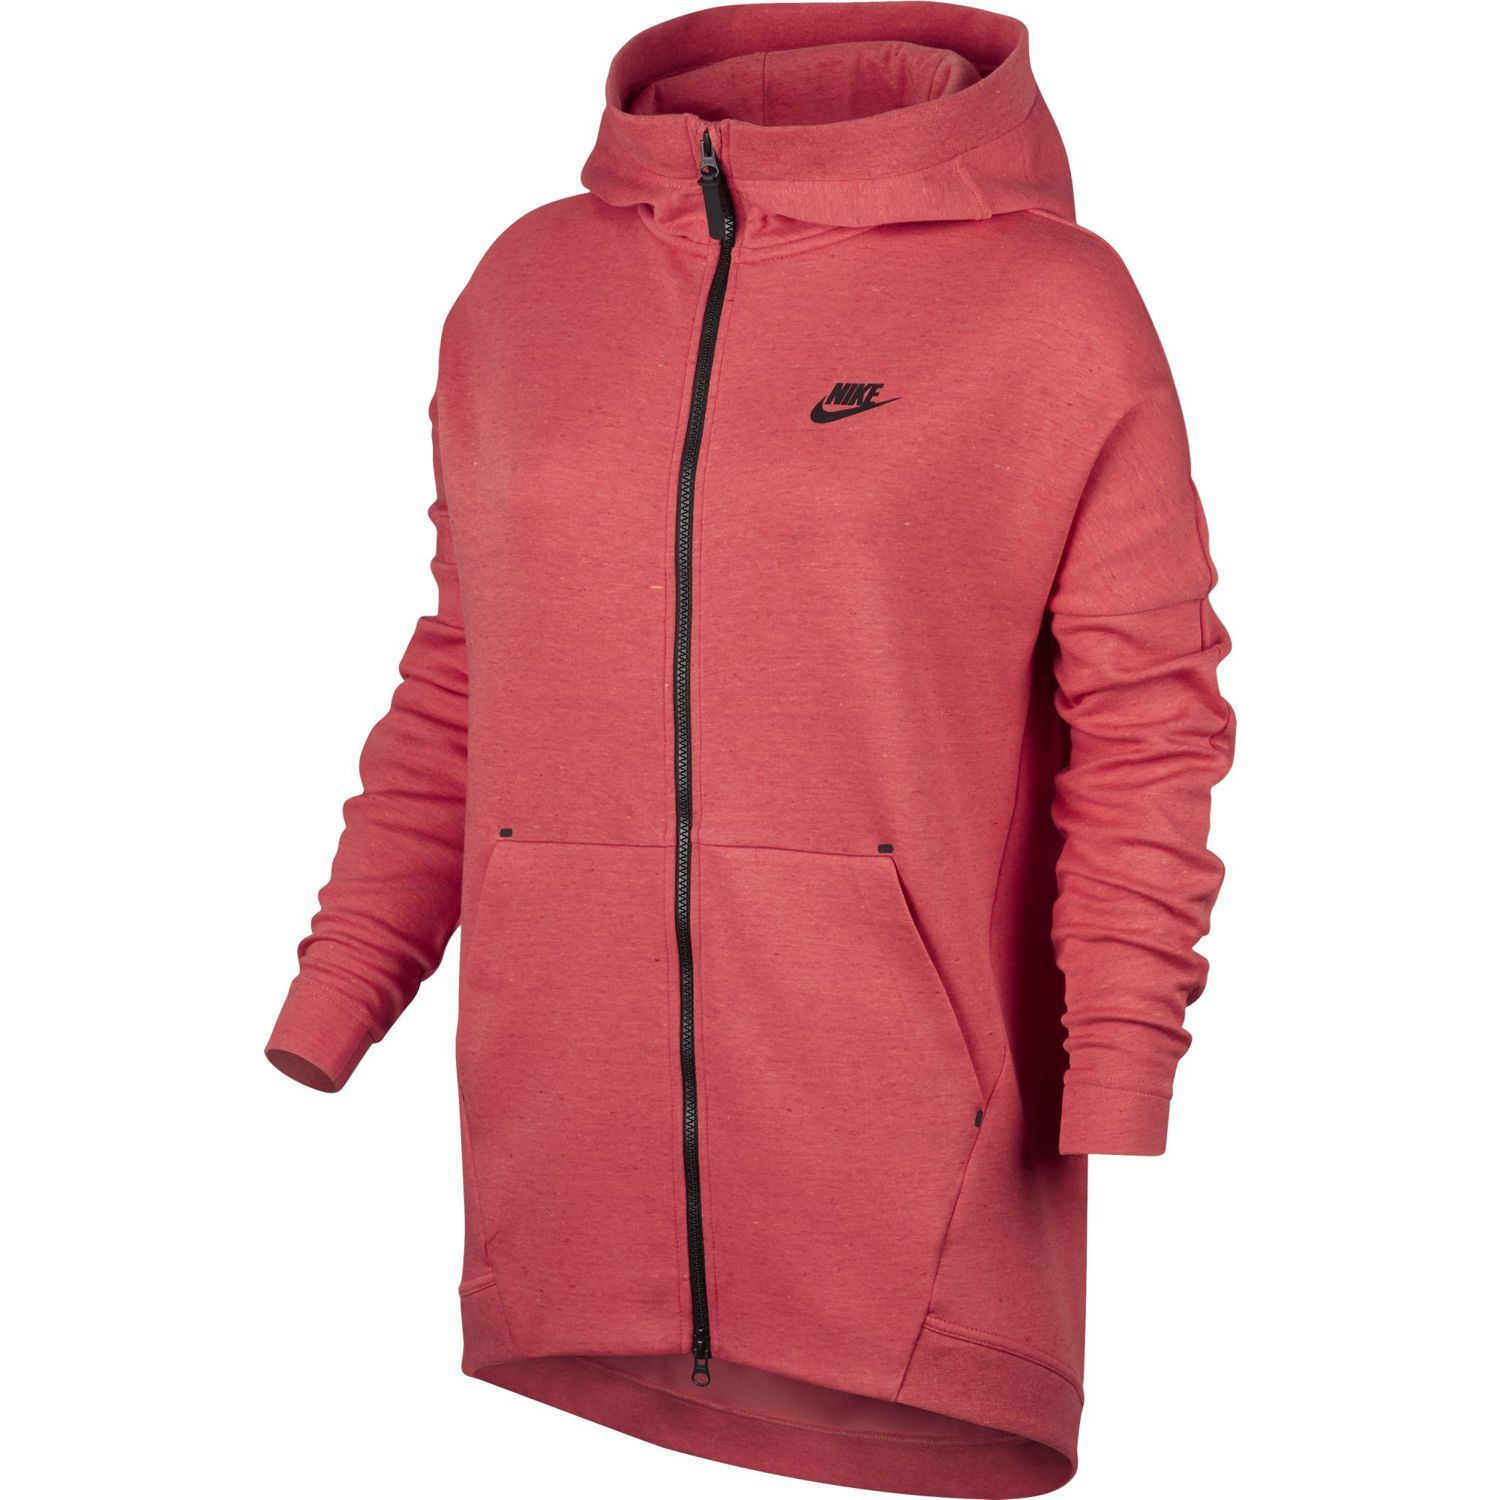 Bluza Nike Sportswear Tech Fleece 811710 850